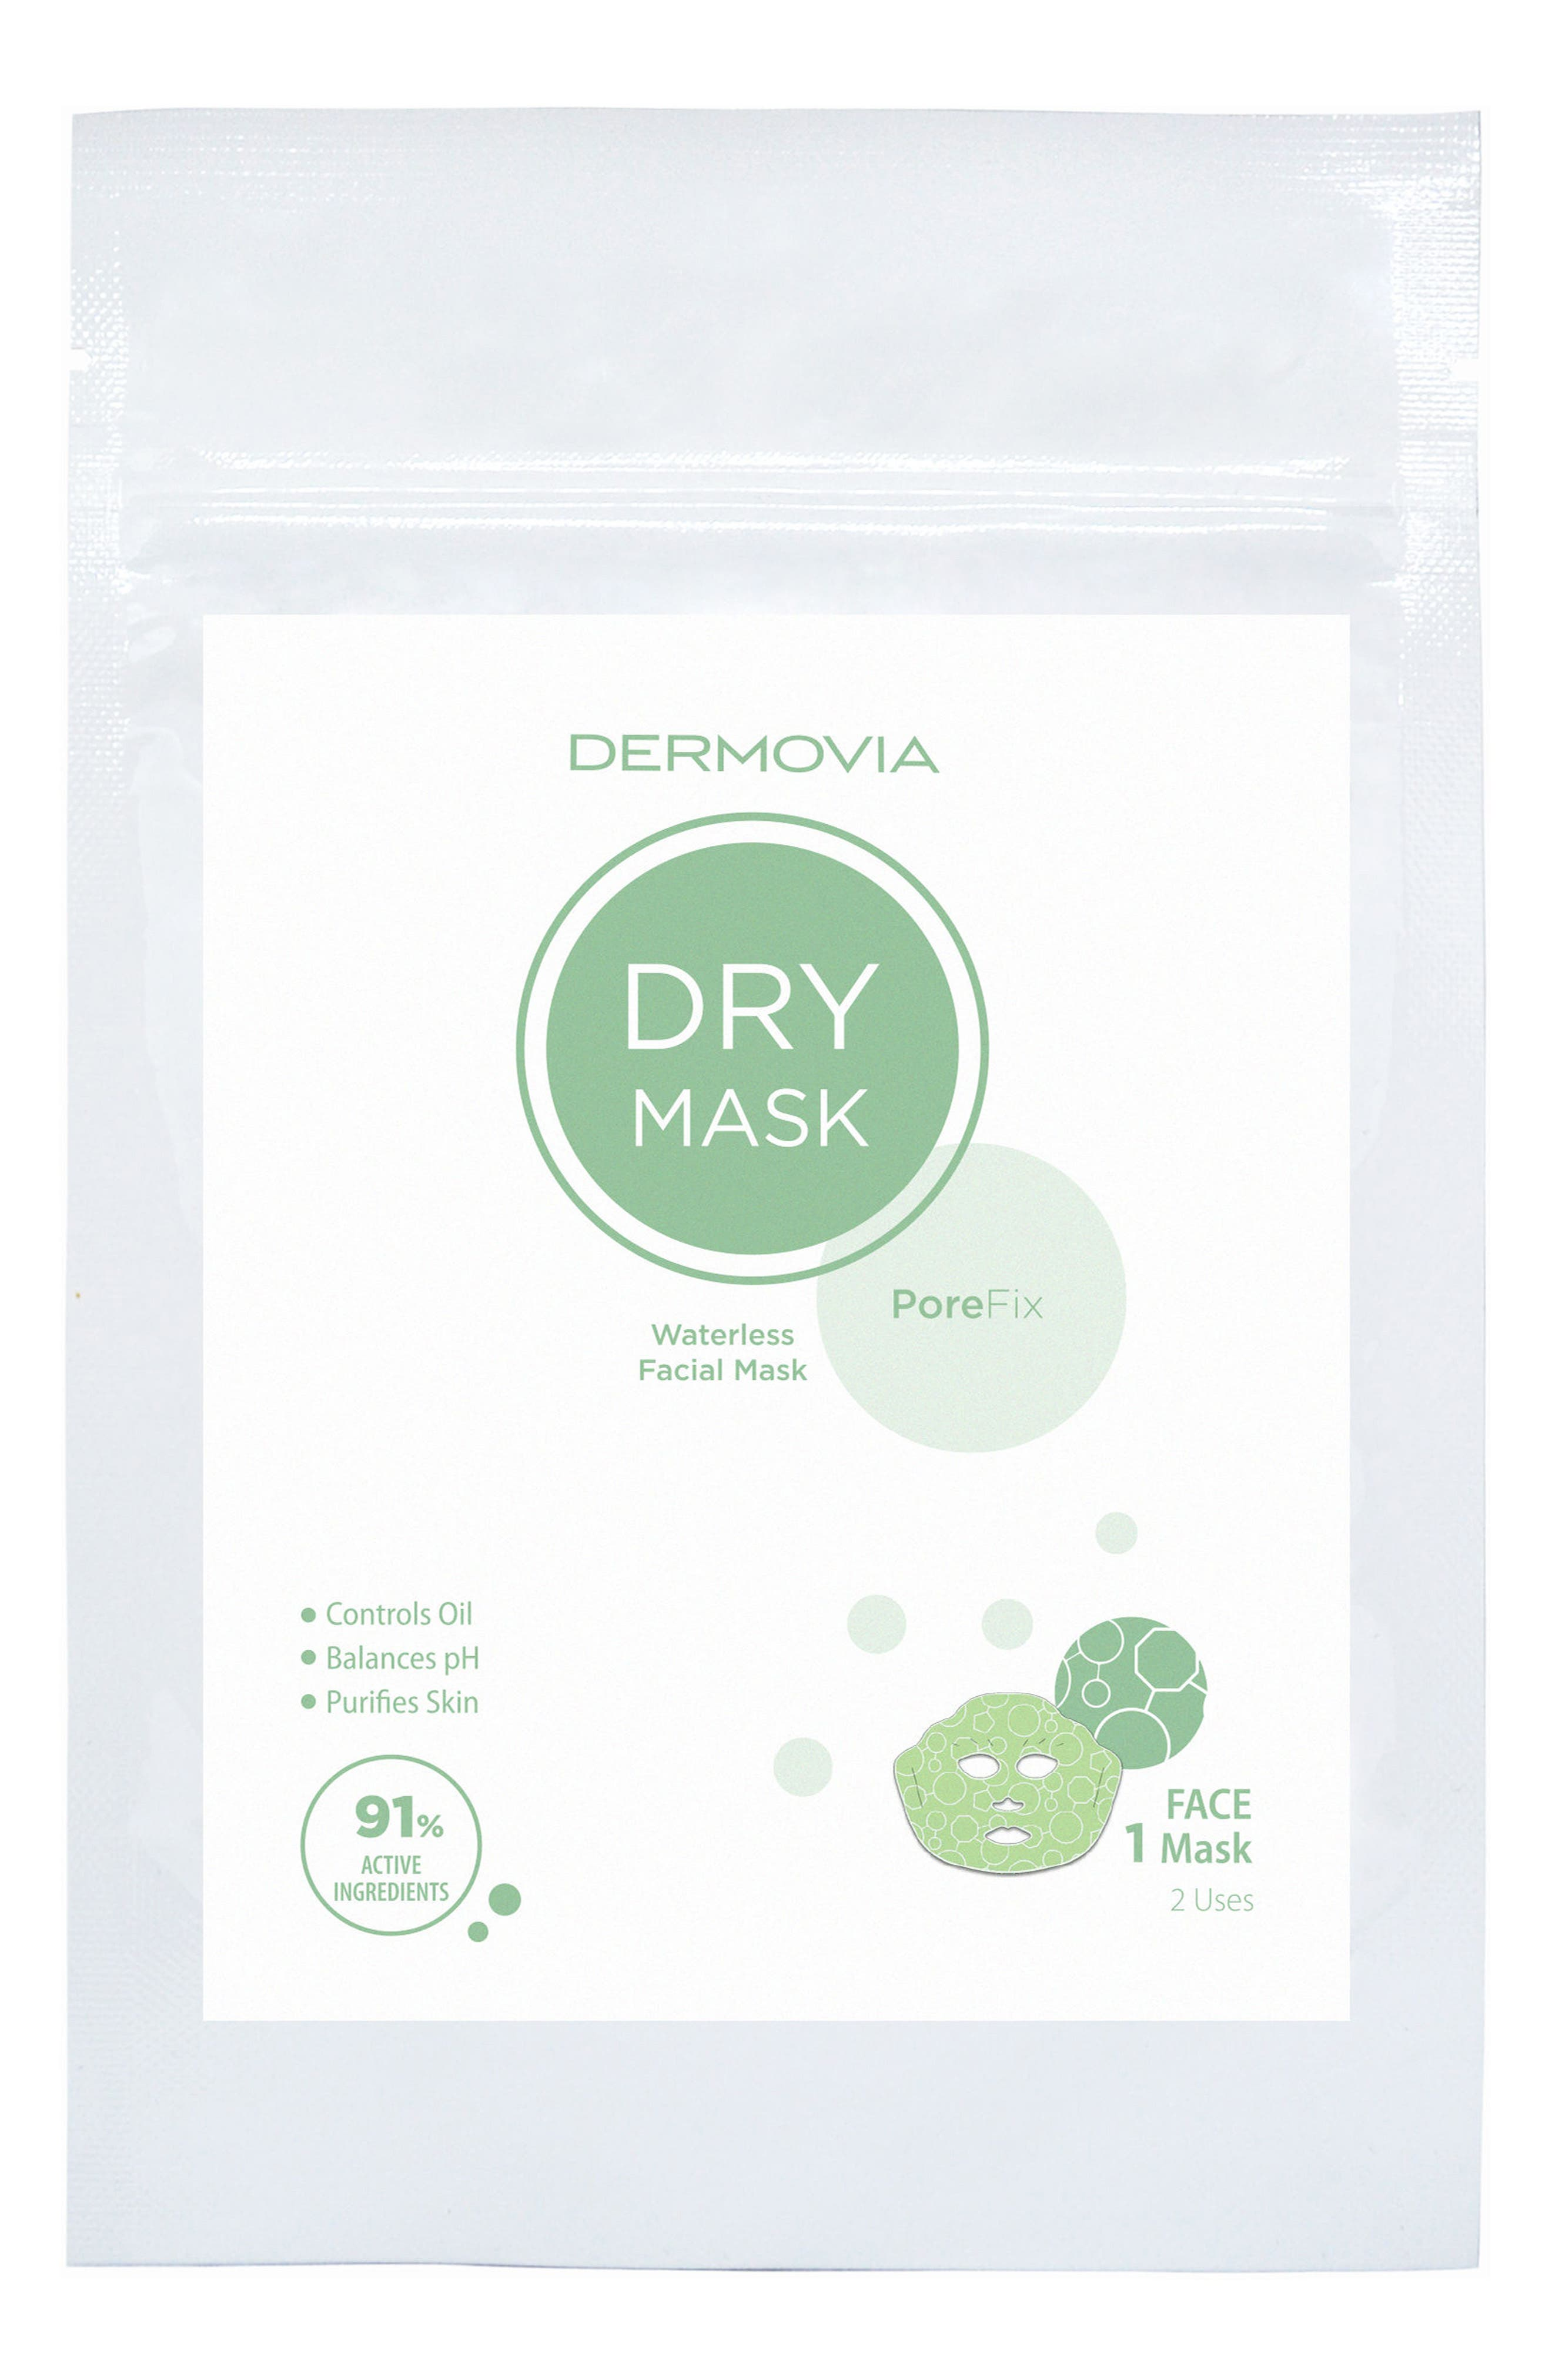 DERMOVIA Dry Mask Porefix Waterless Facial Mask